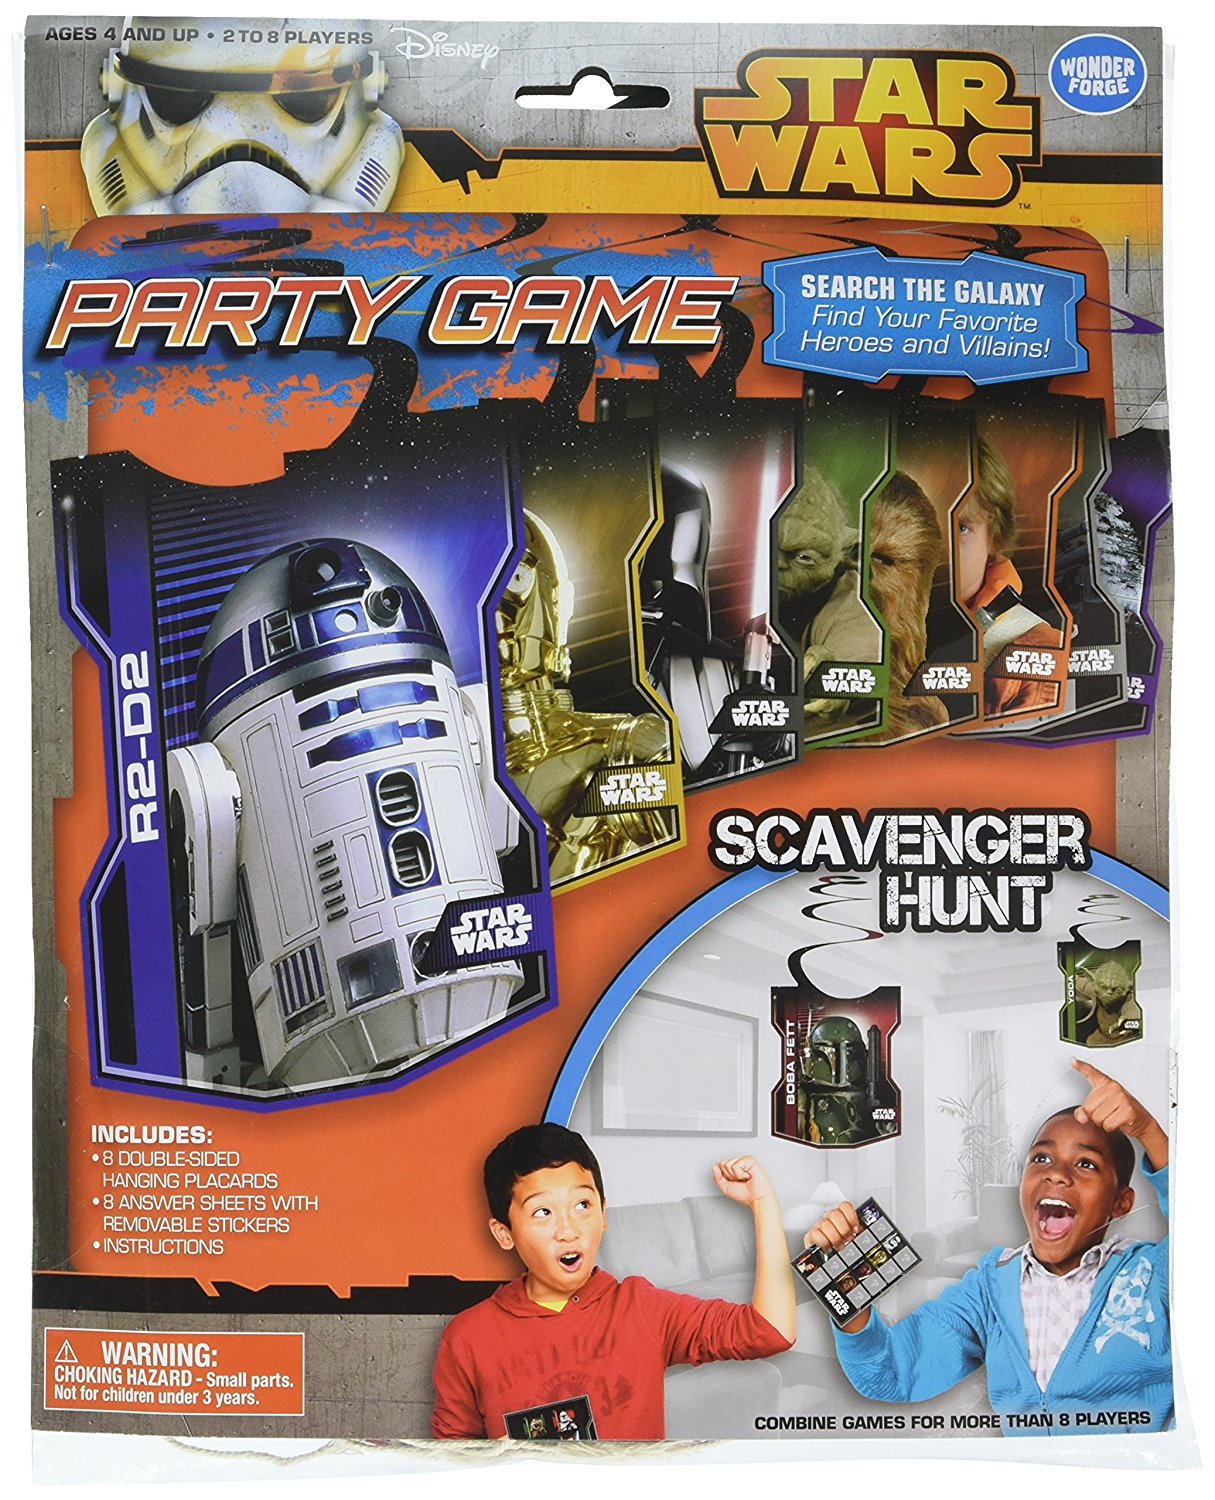 A Star Wars scavenger hunt for kids